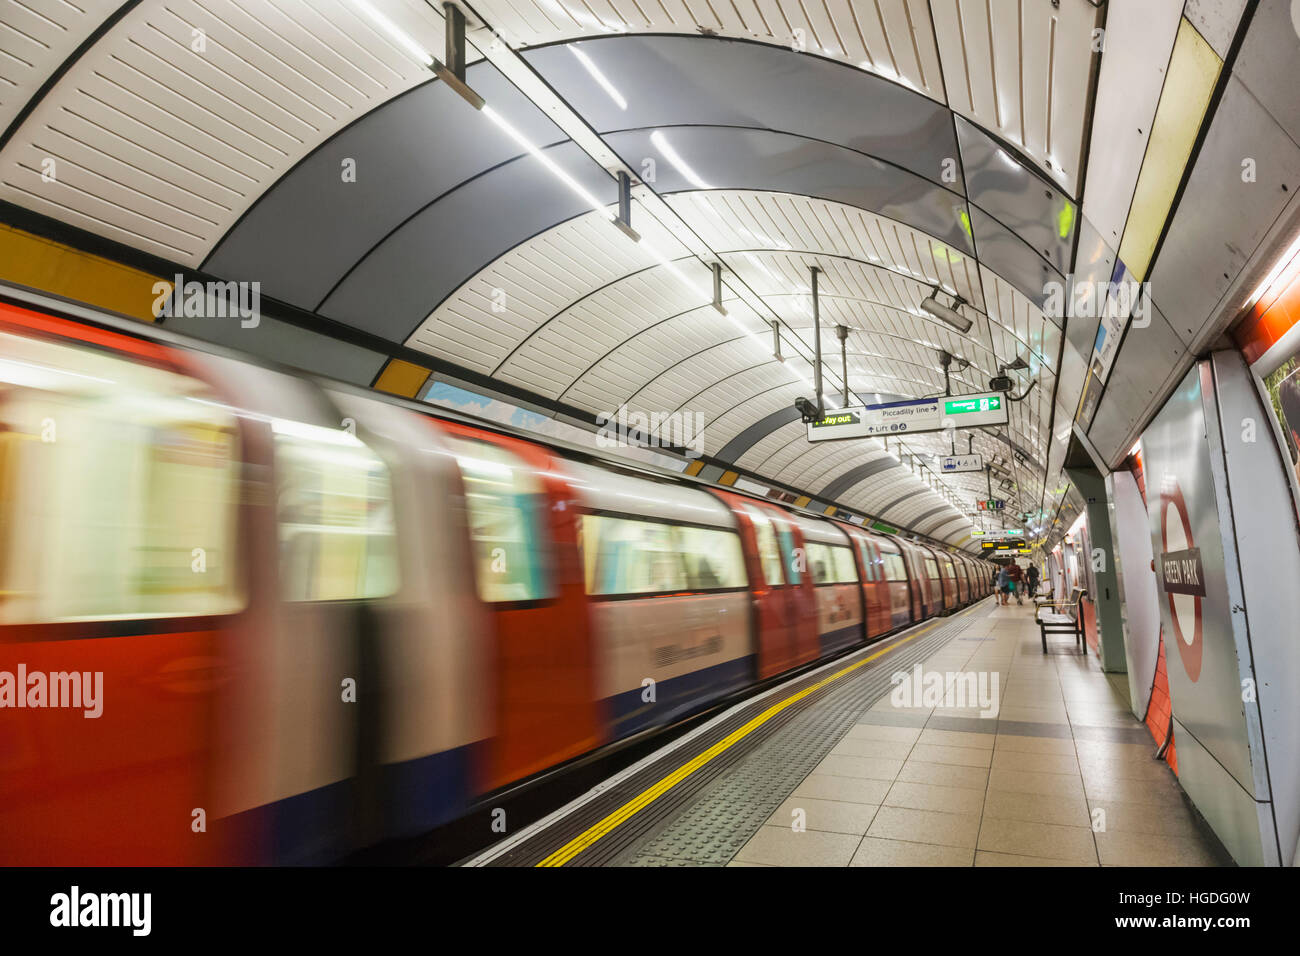 England, London, Subway Station and Train - Stock Image